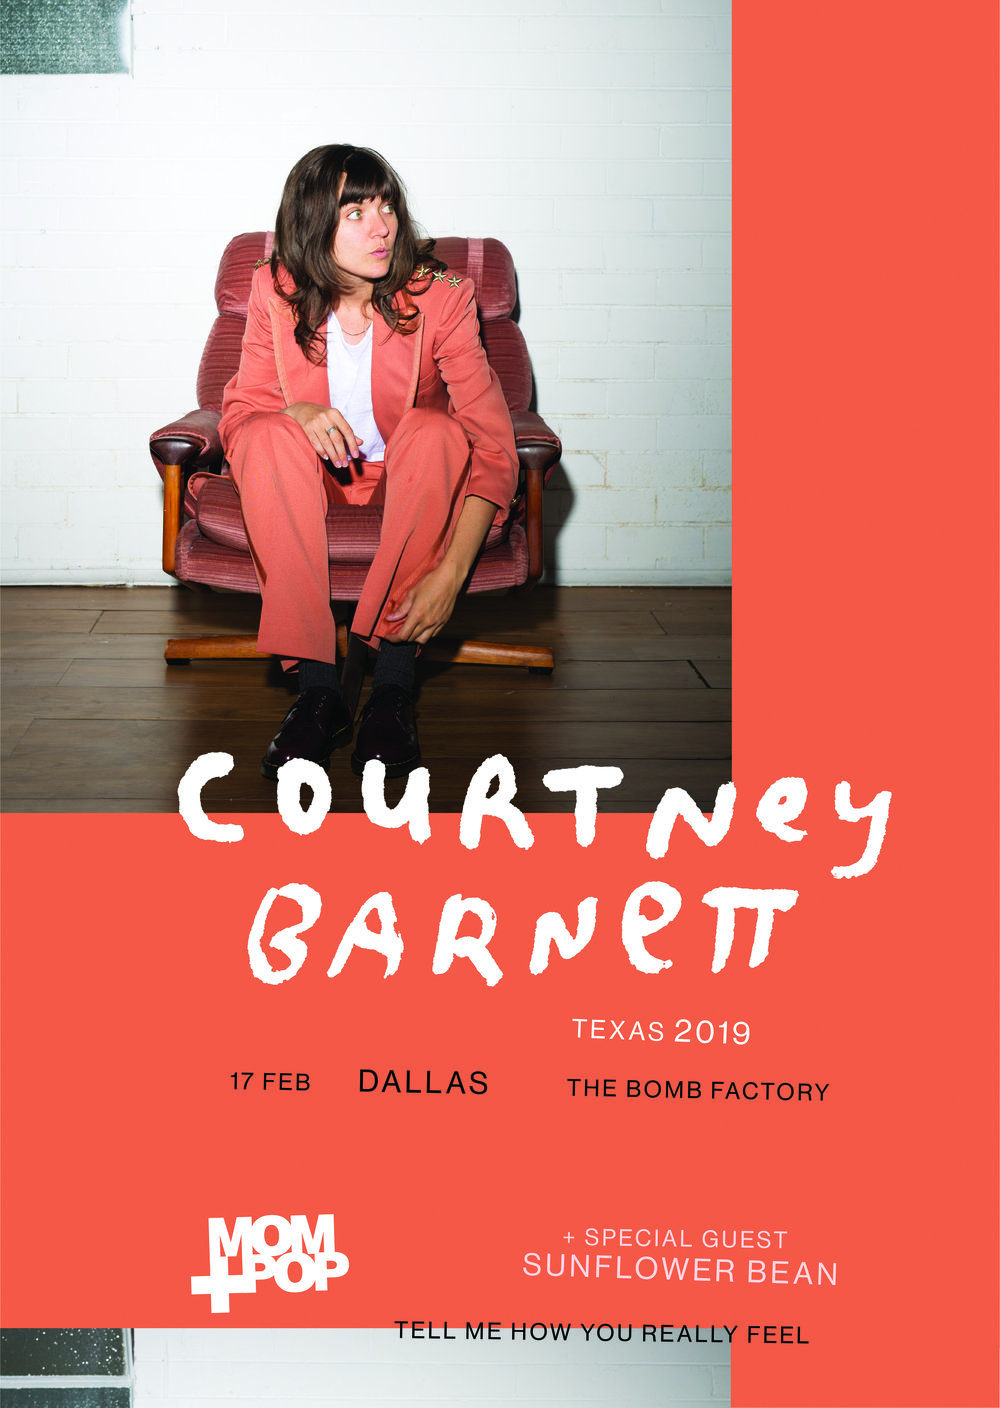 Dallas TX Tour Poster.jpg